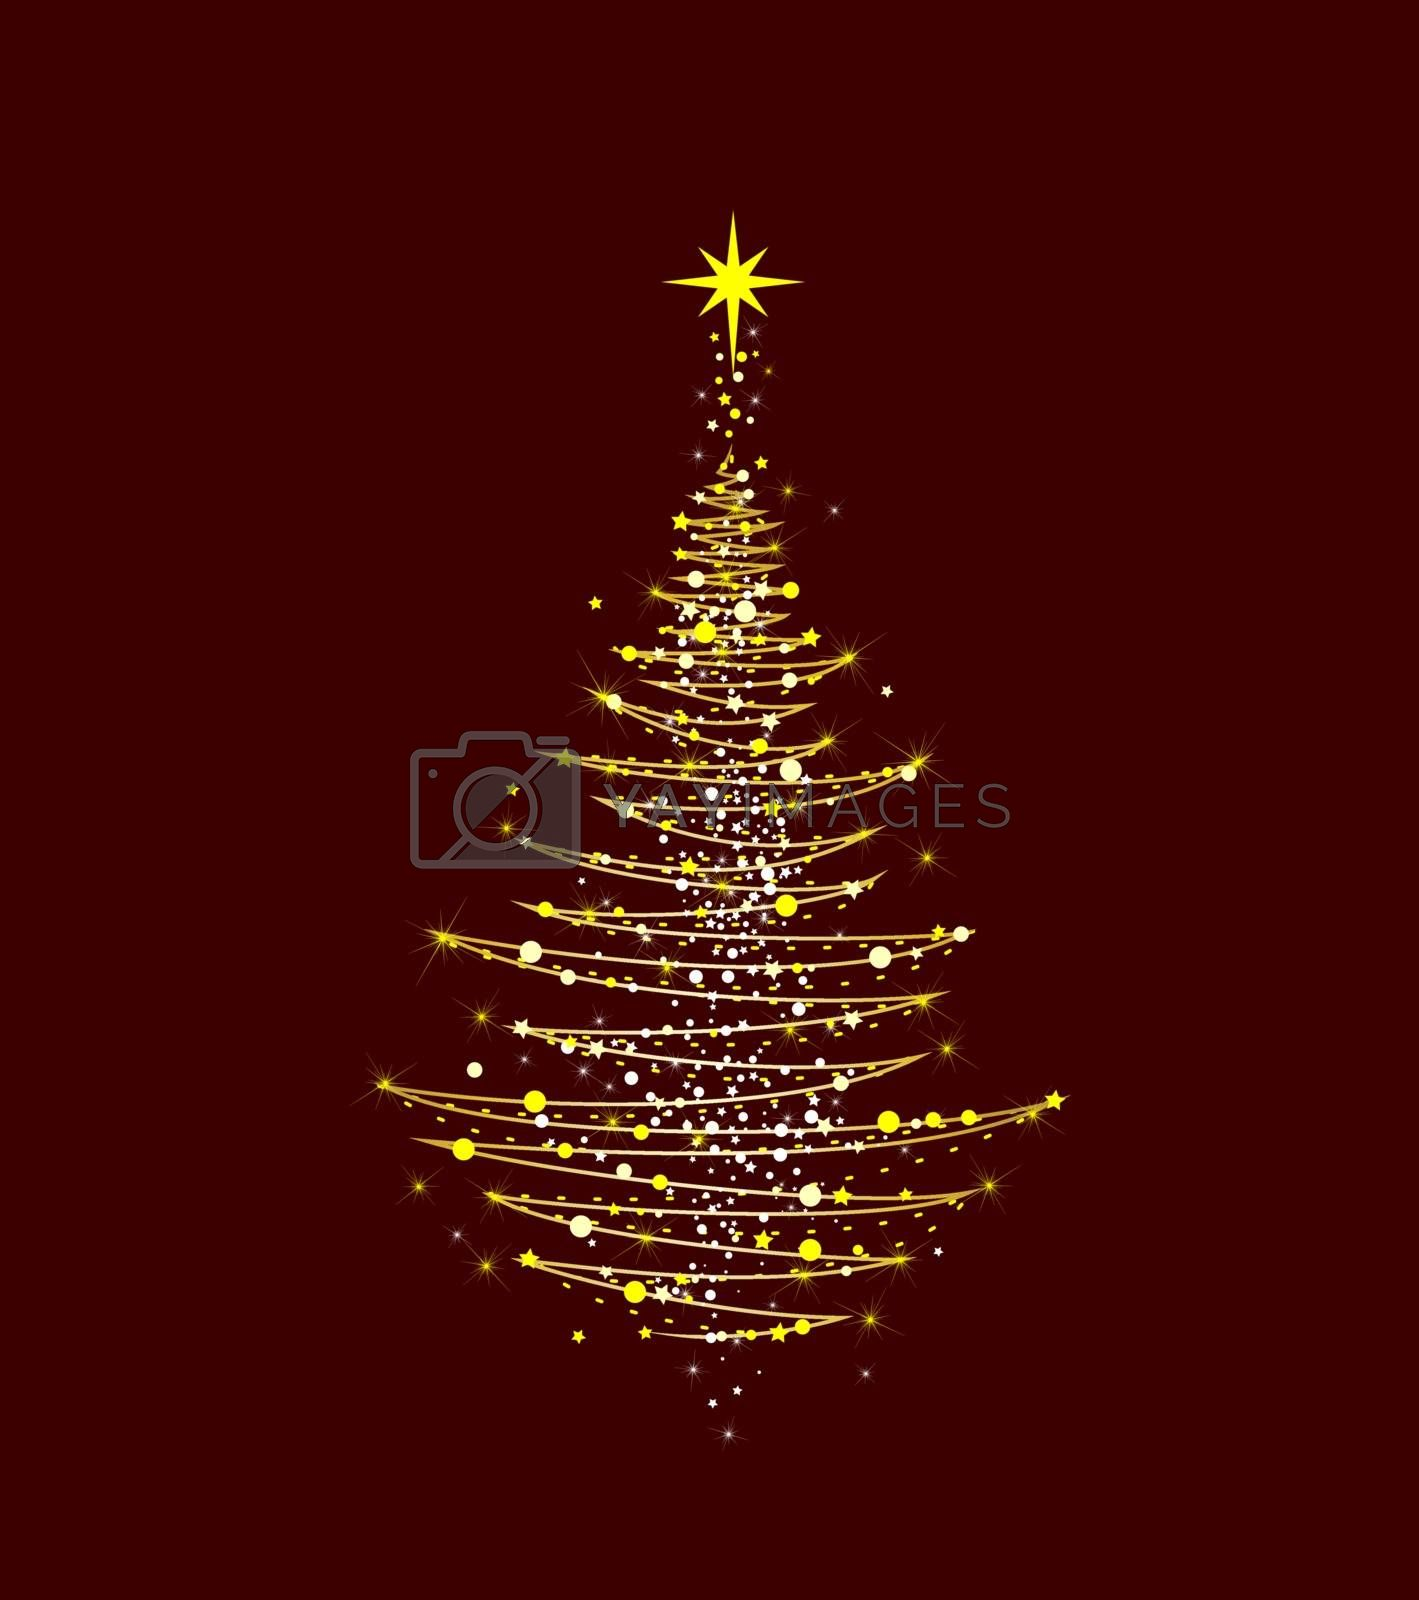 Christmas tree shining golden by liolle